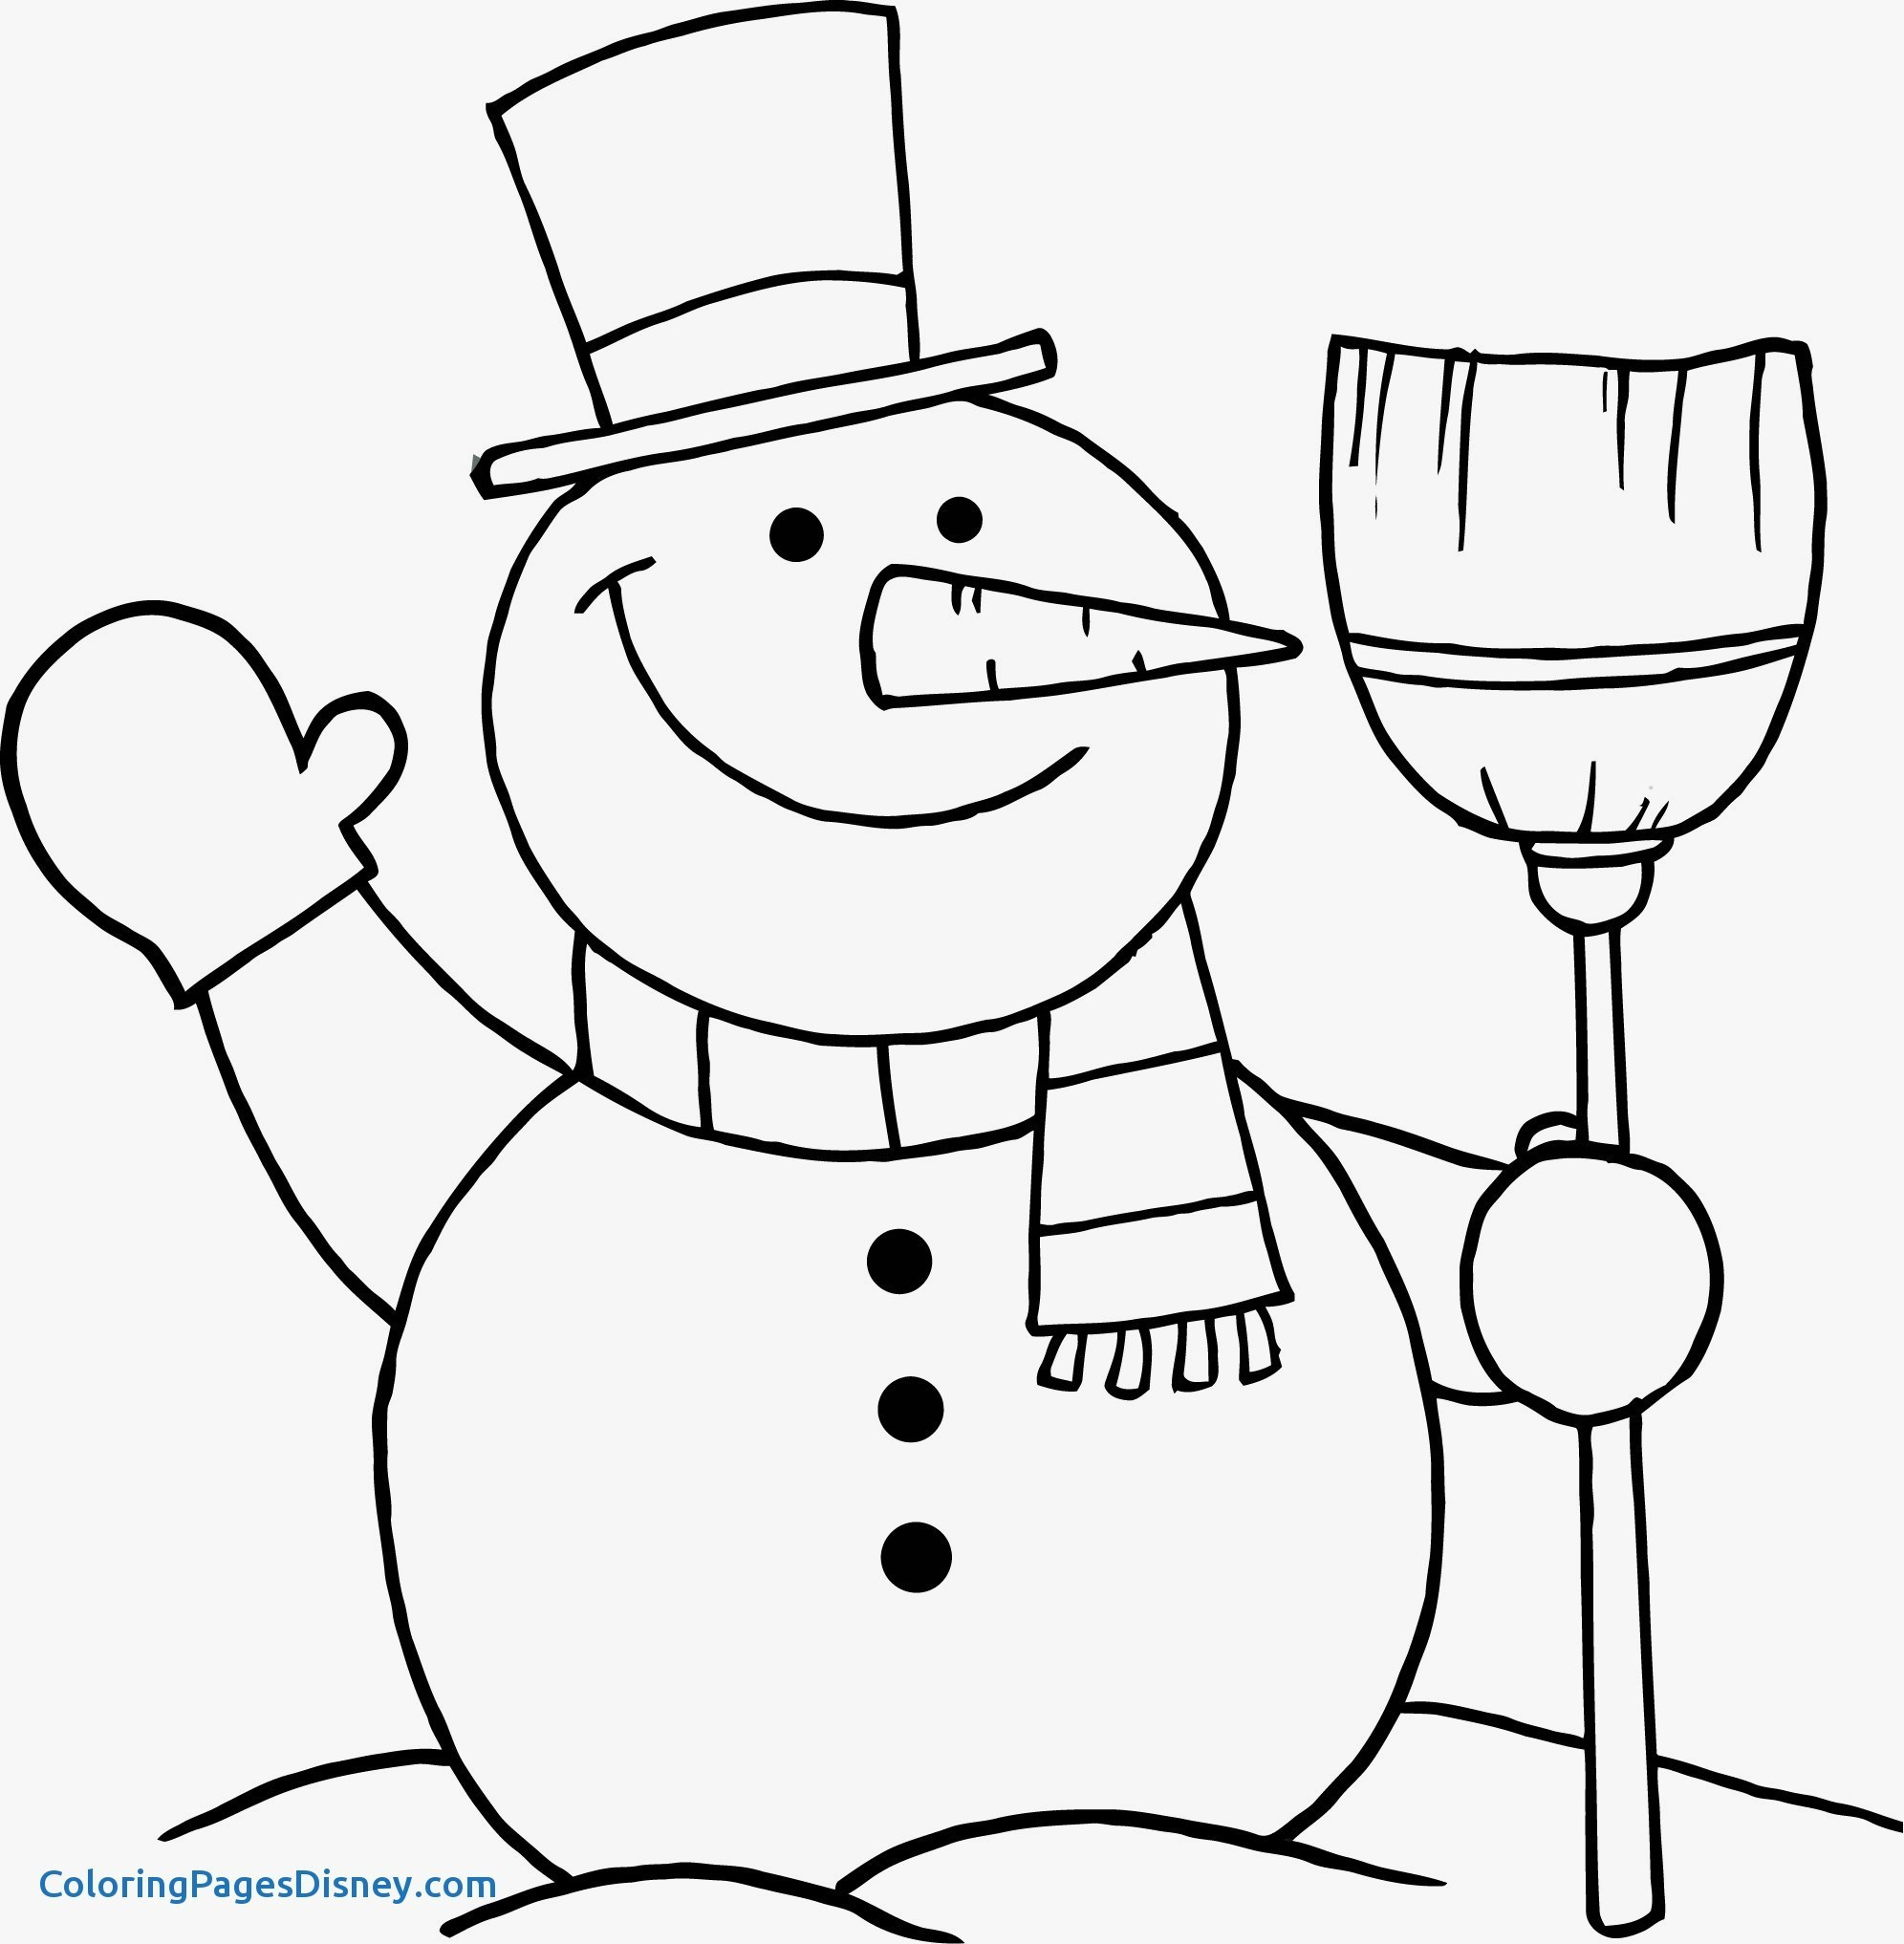 Snowmen Coloring Pages Coloring Pages Snowman Coloring Page Hollyelizabethfox Com Pages